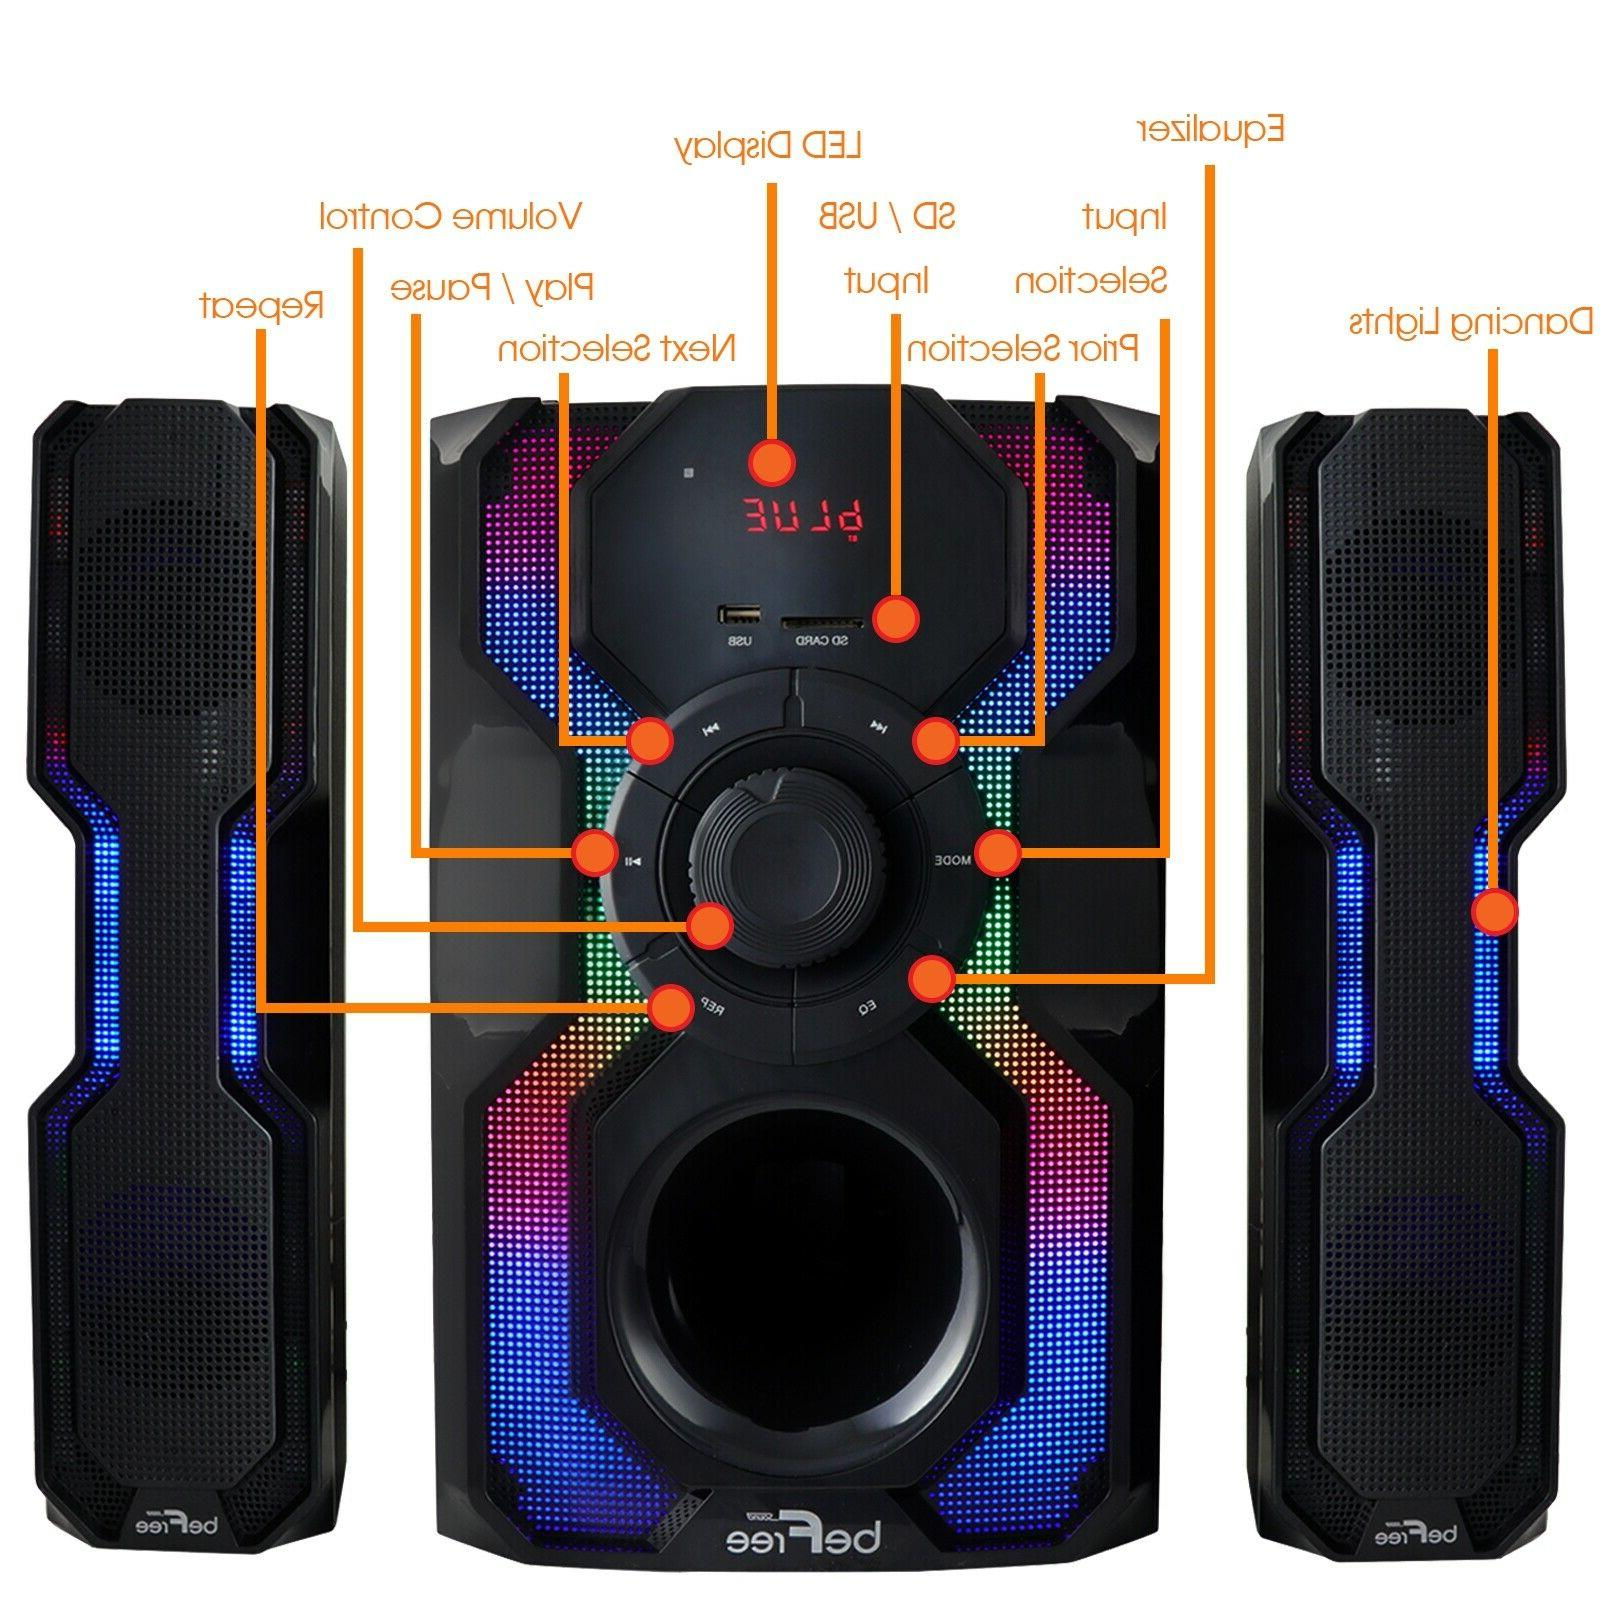 2.1CH SPEAKER STEREO MP3 PLAYER LIGHTS